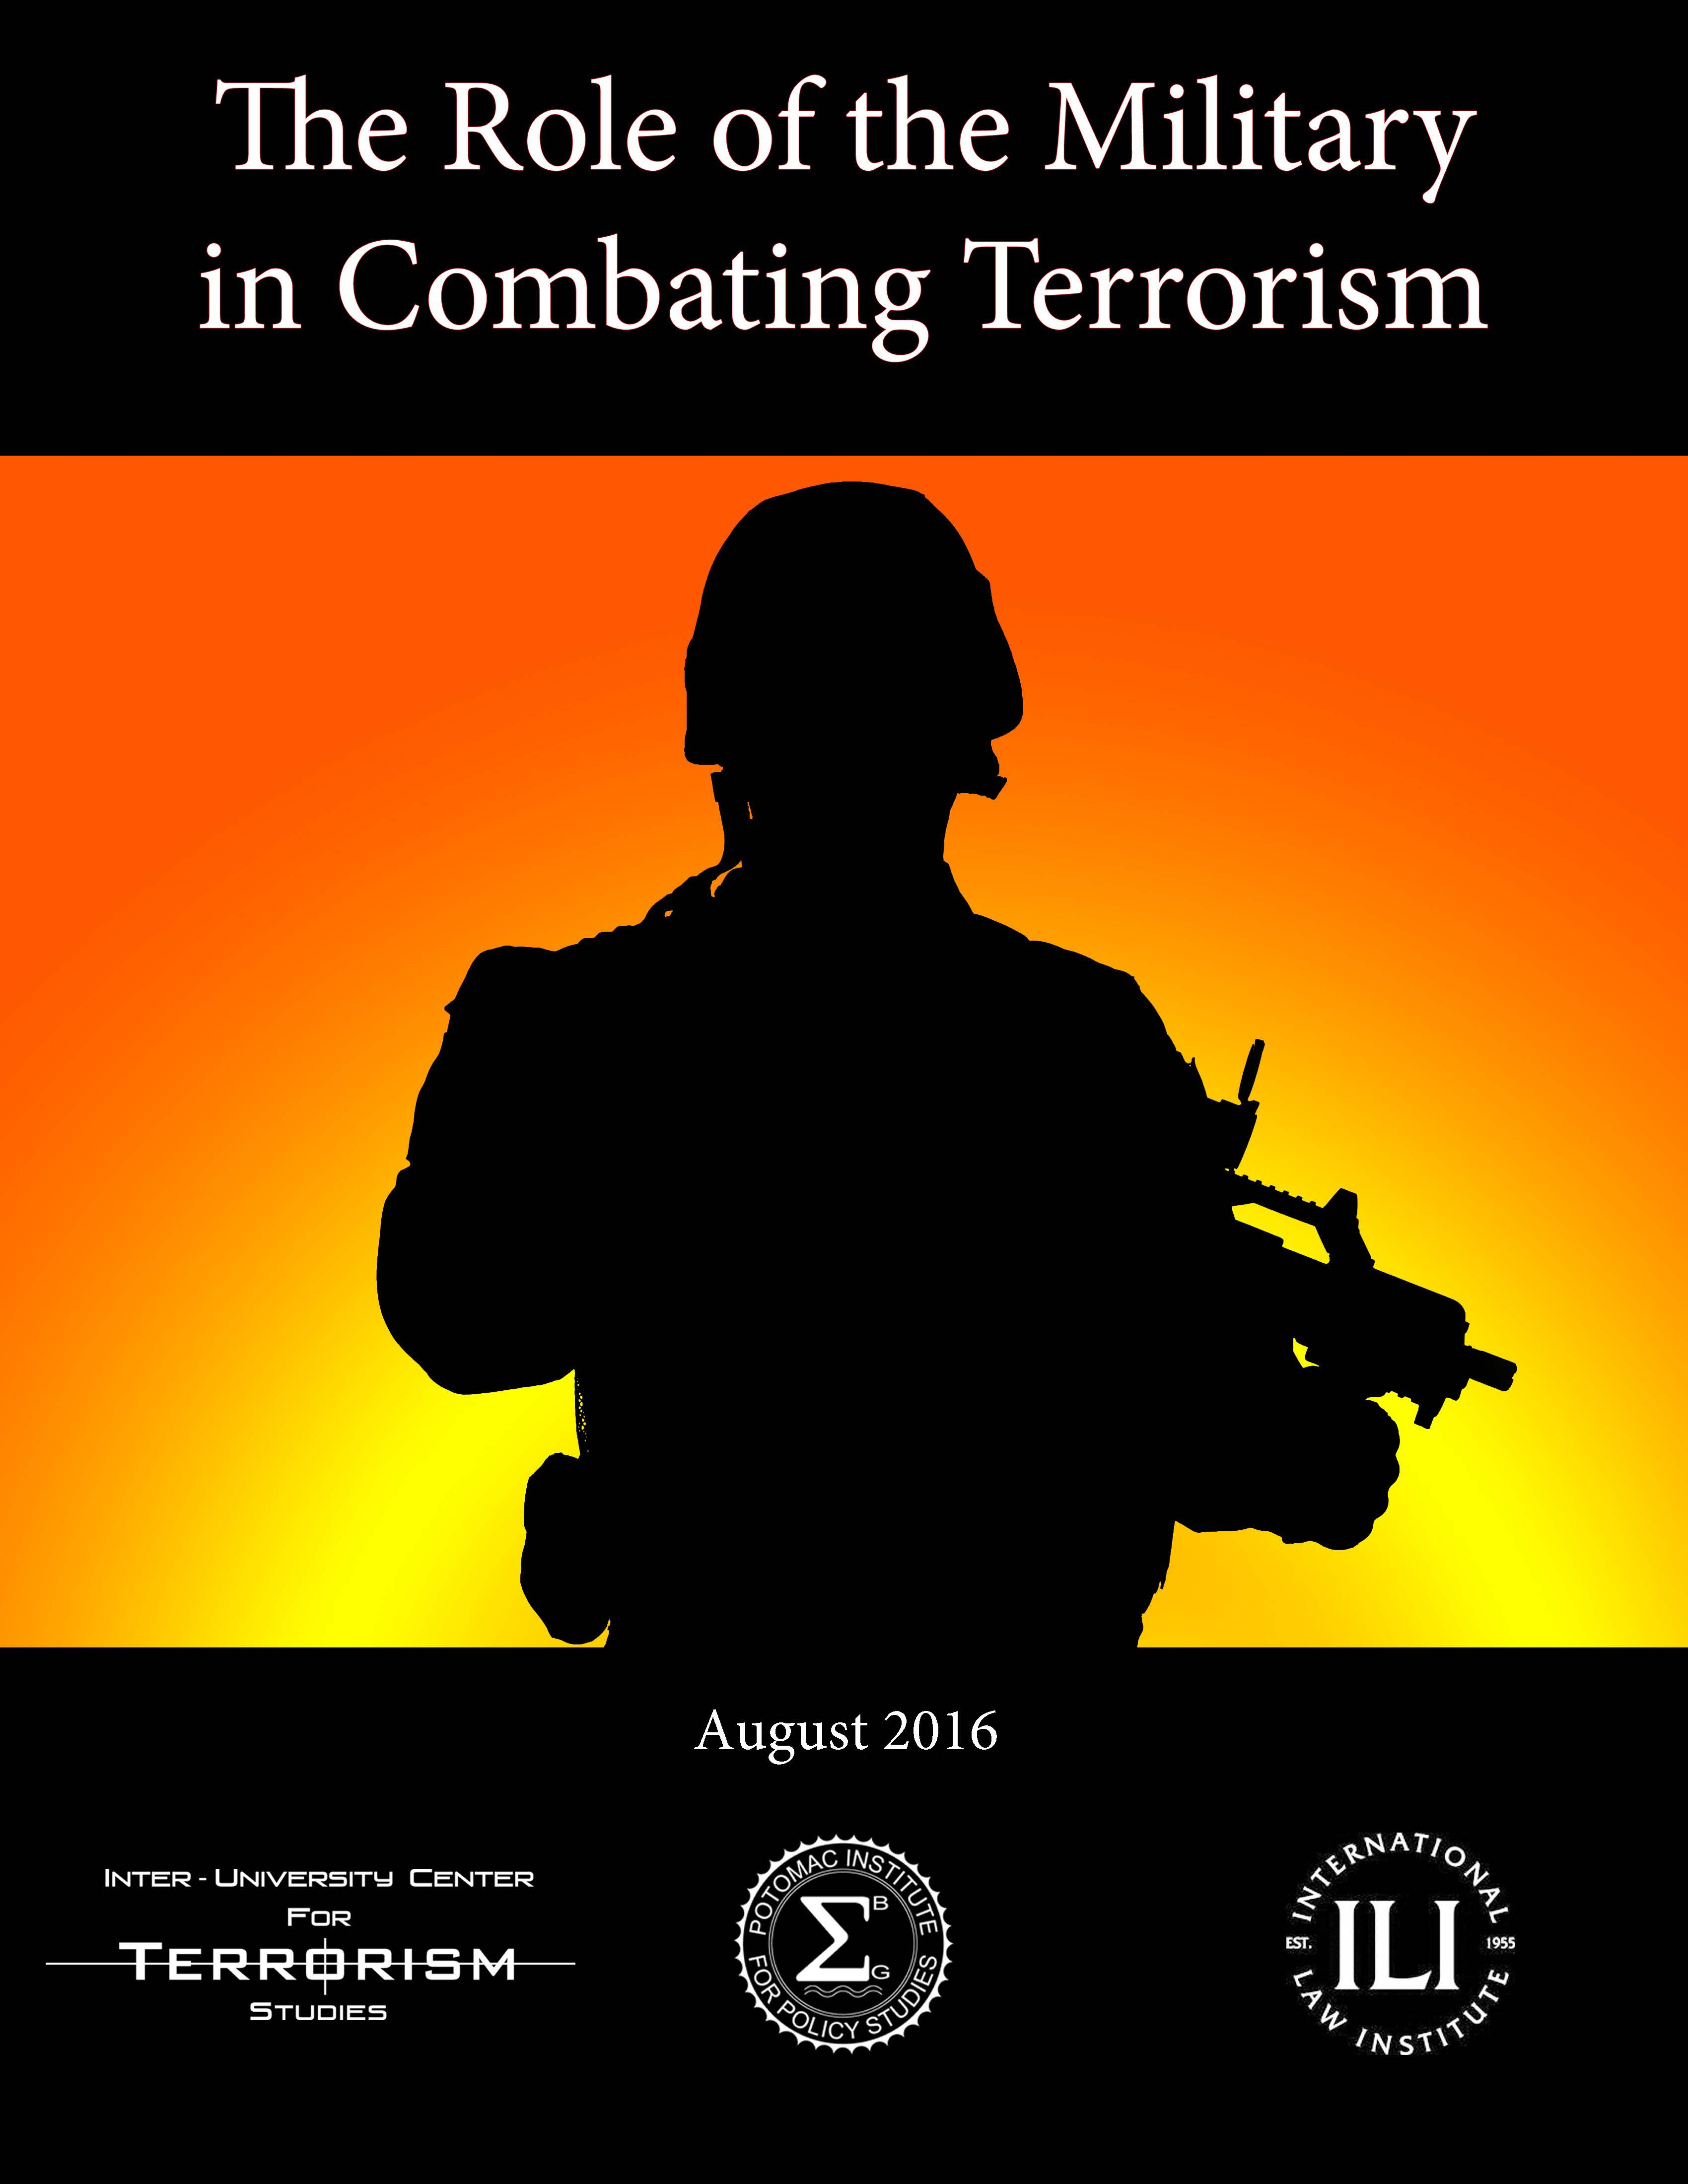 The Role of the Military in Combating Terrorism